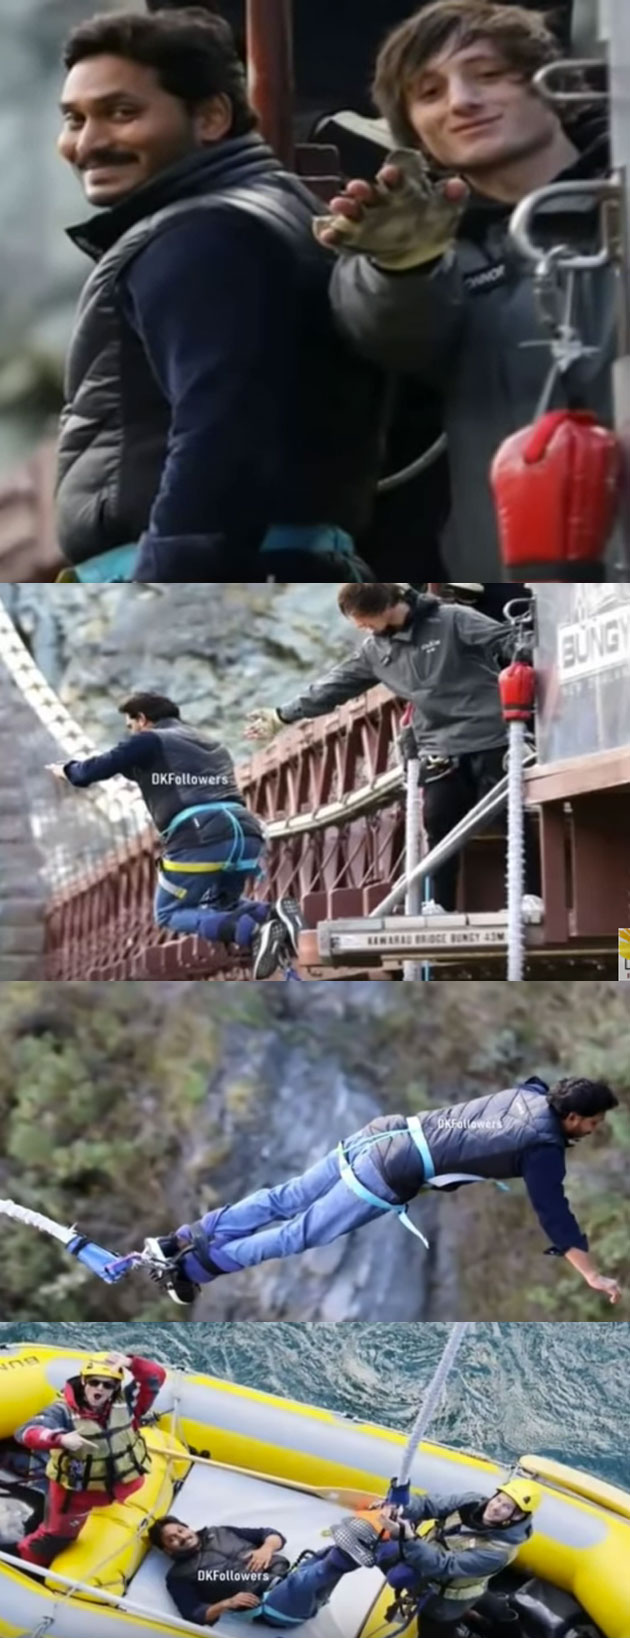 YS Jagan Mohan Reddy Bungy Jump at Kawarau Bridge, New Zealand